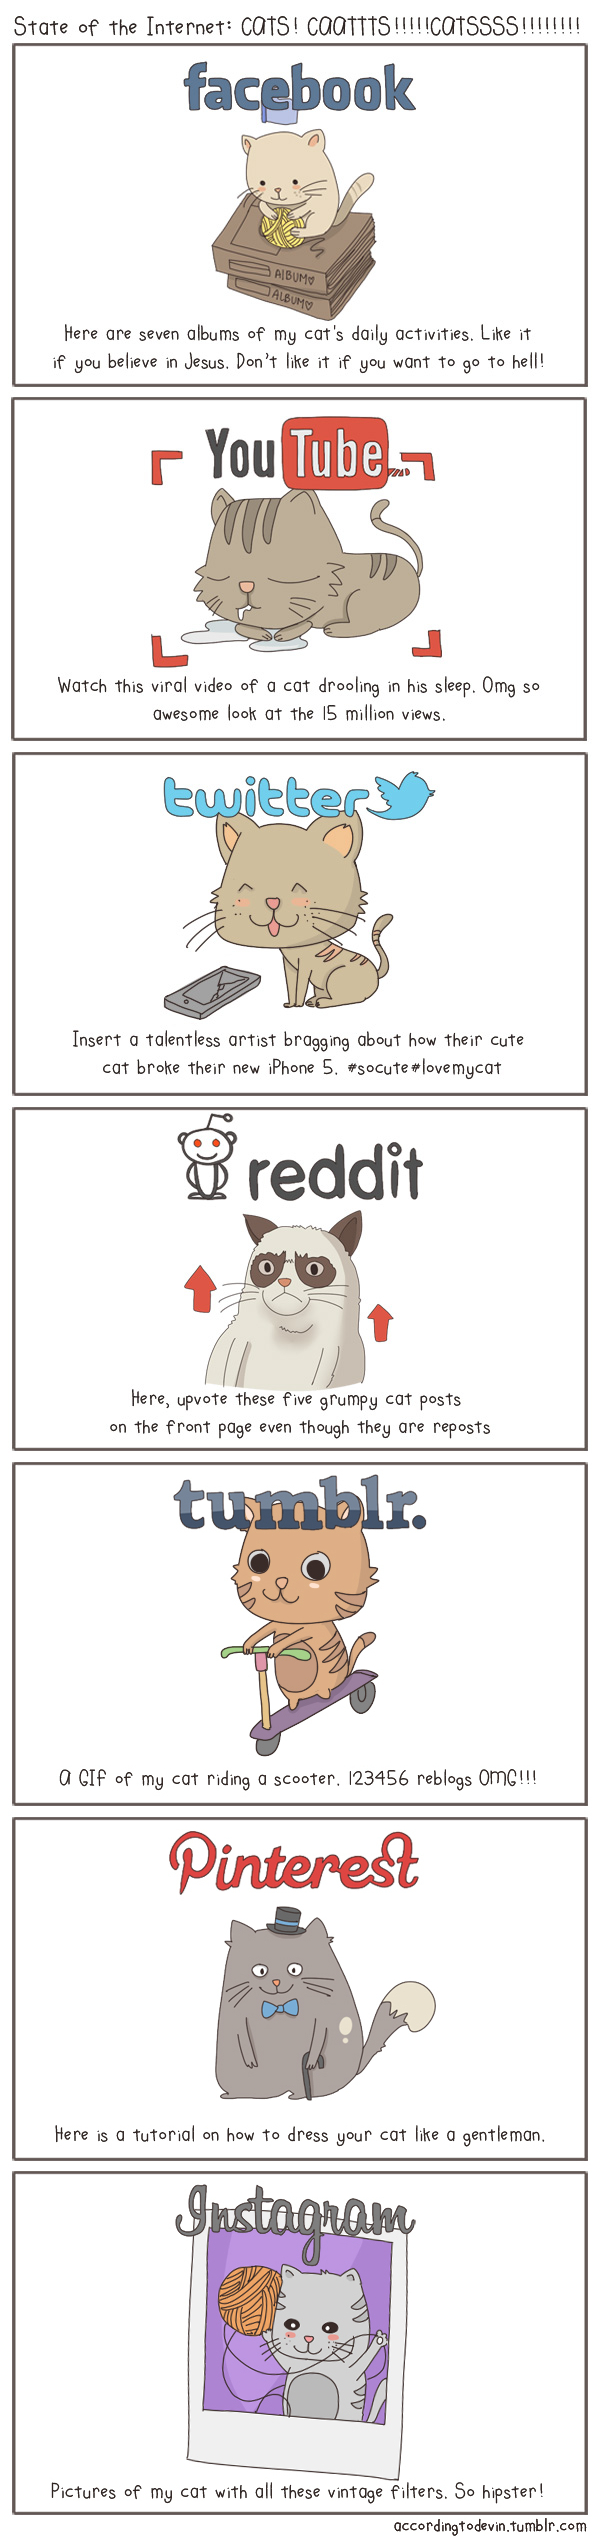 The State of Internet Explained With Cats